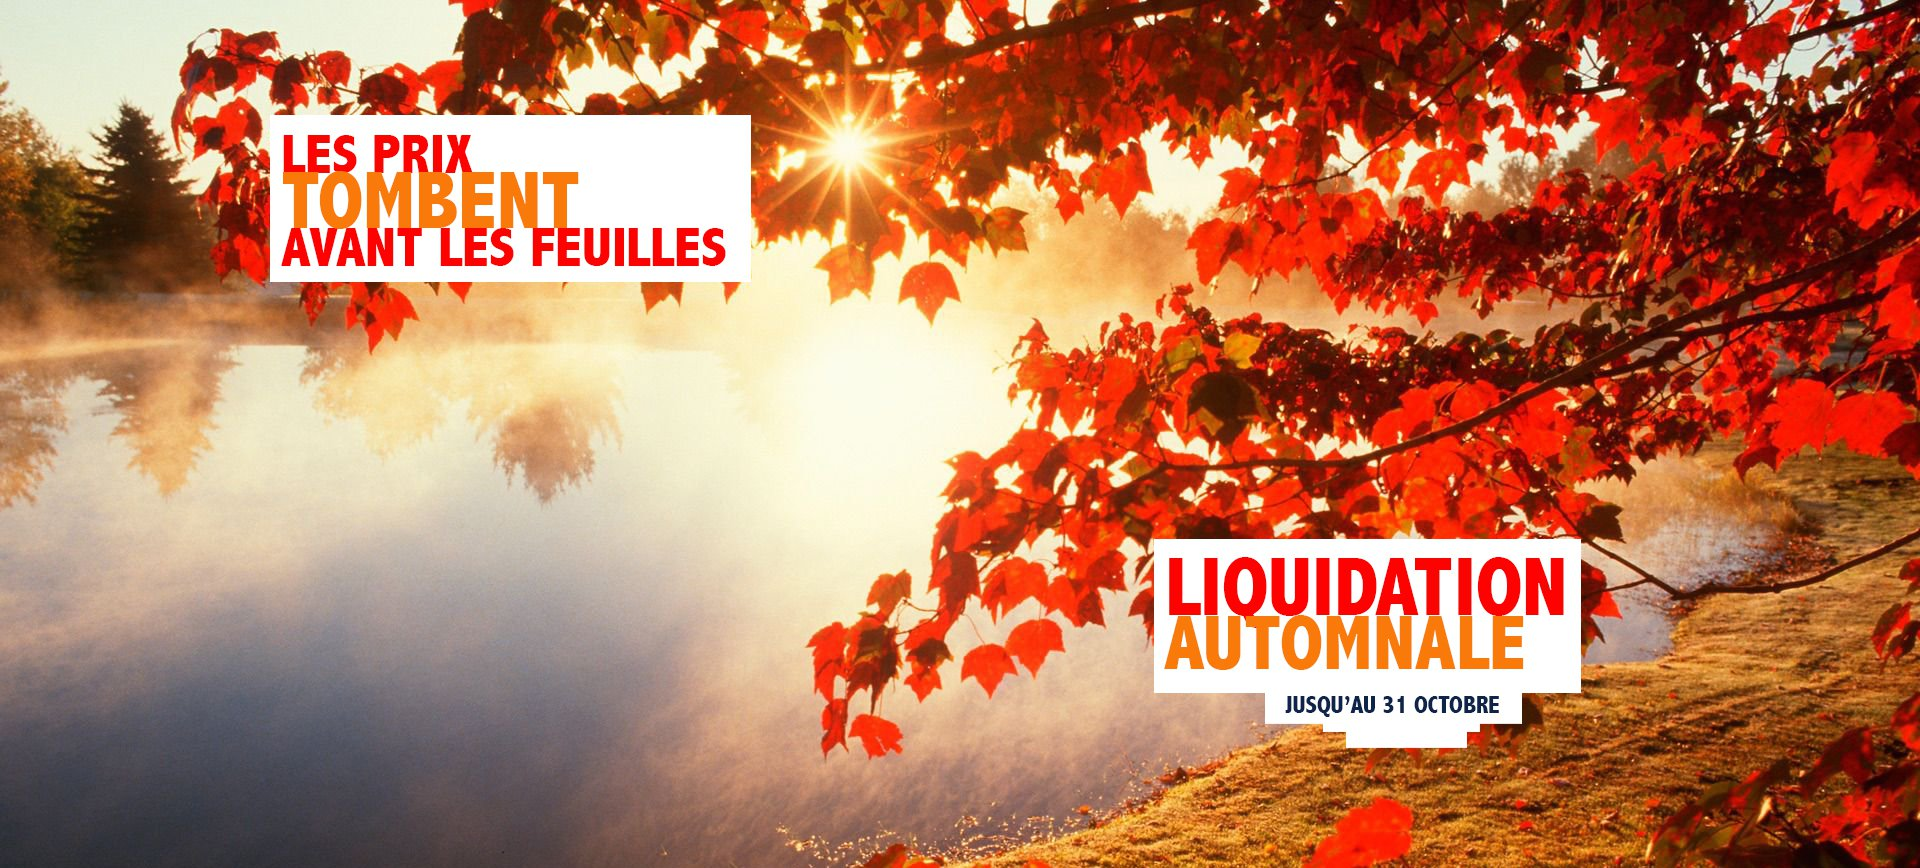 Regal 2100 - Liquidationautomne2015